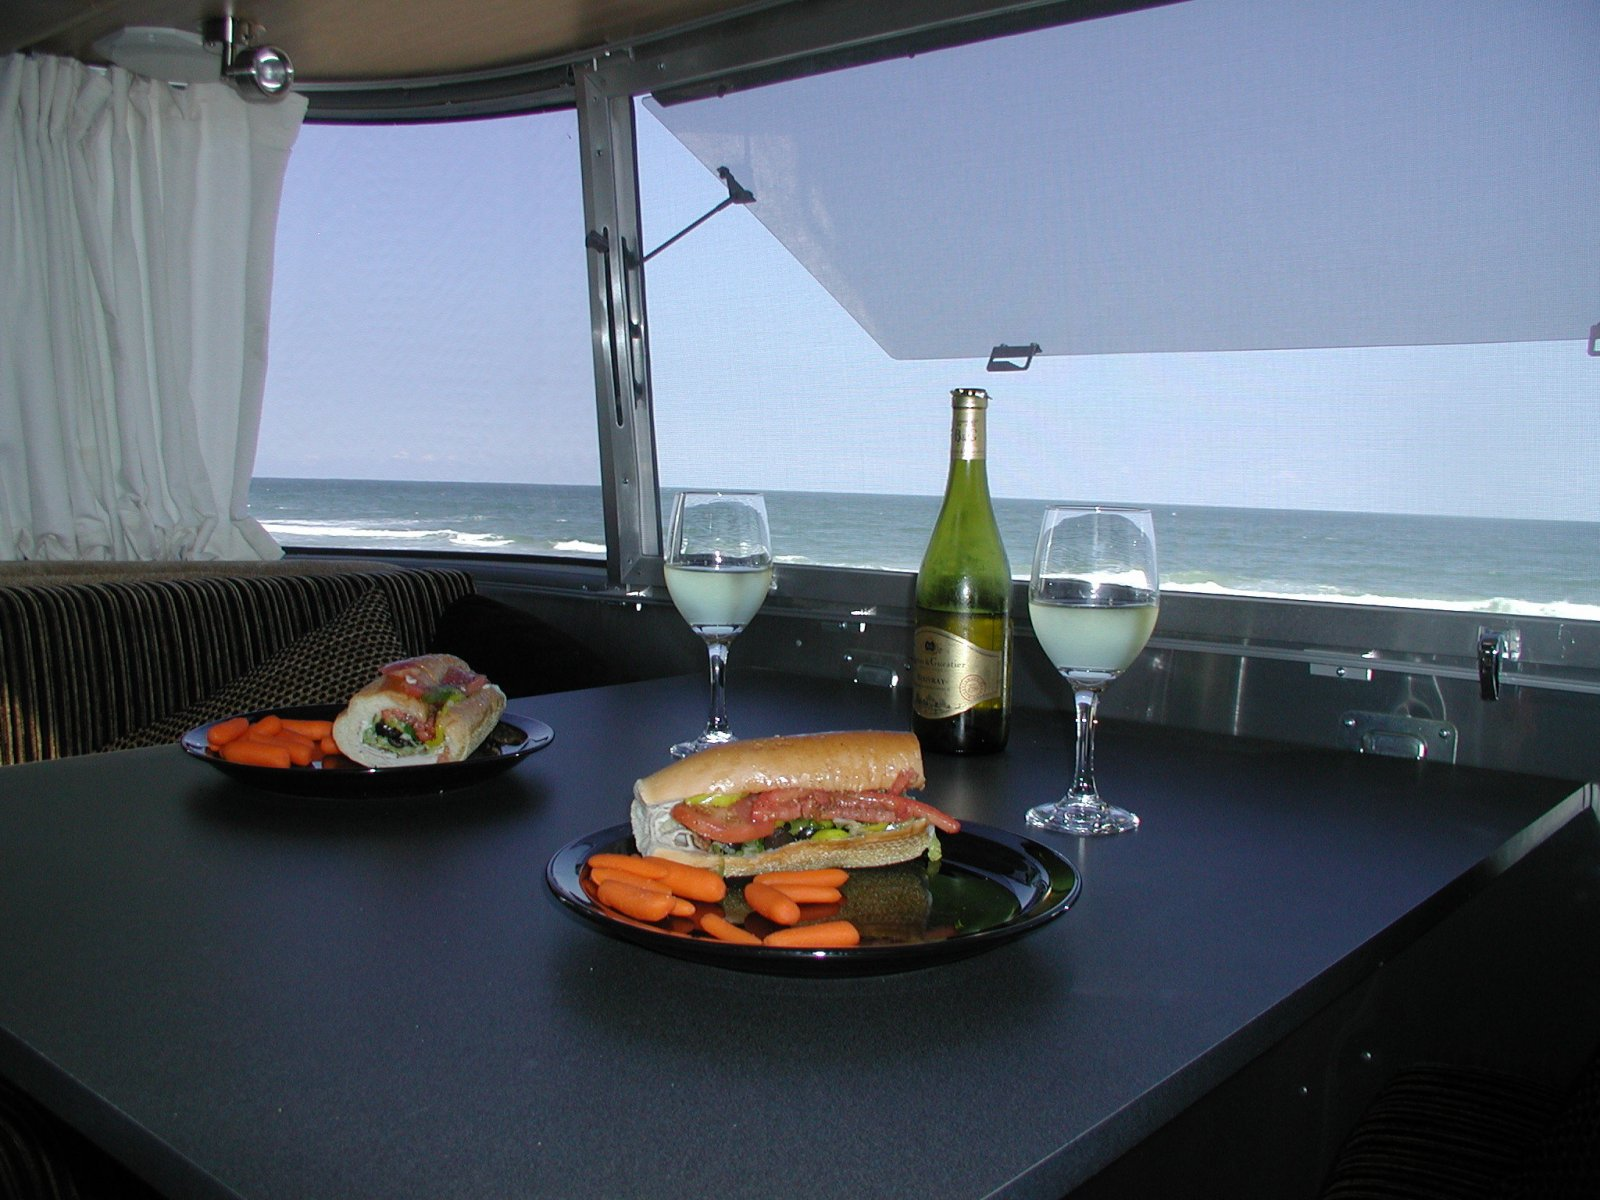 Click image for larger version  Name:BeverlyBeach1.jpg Views:195 Size:271.8 KB ID:137493